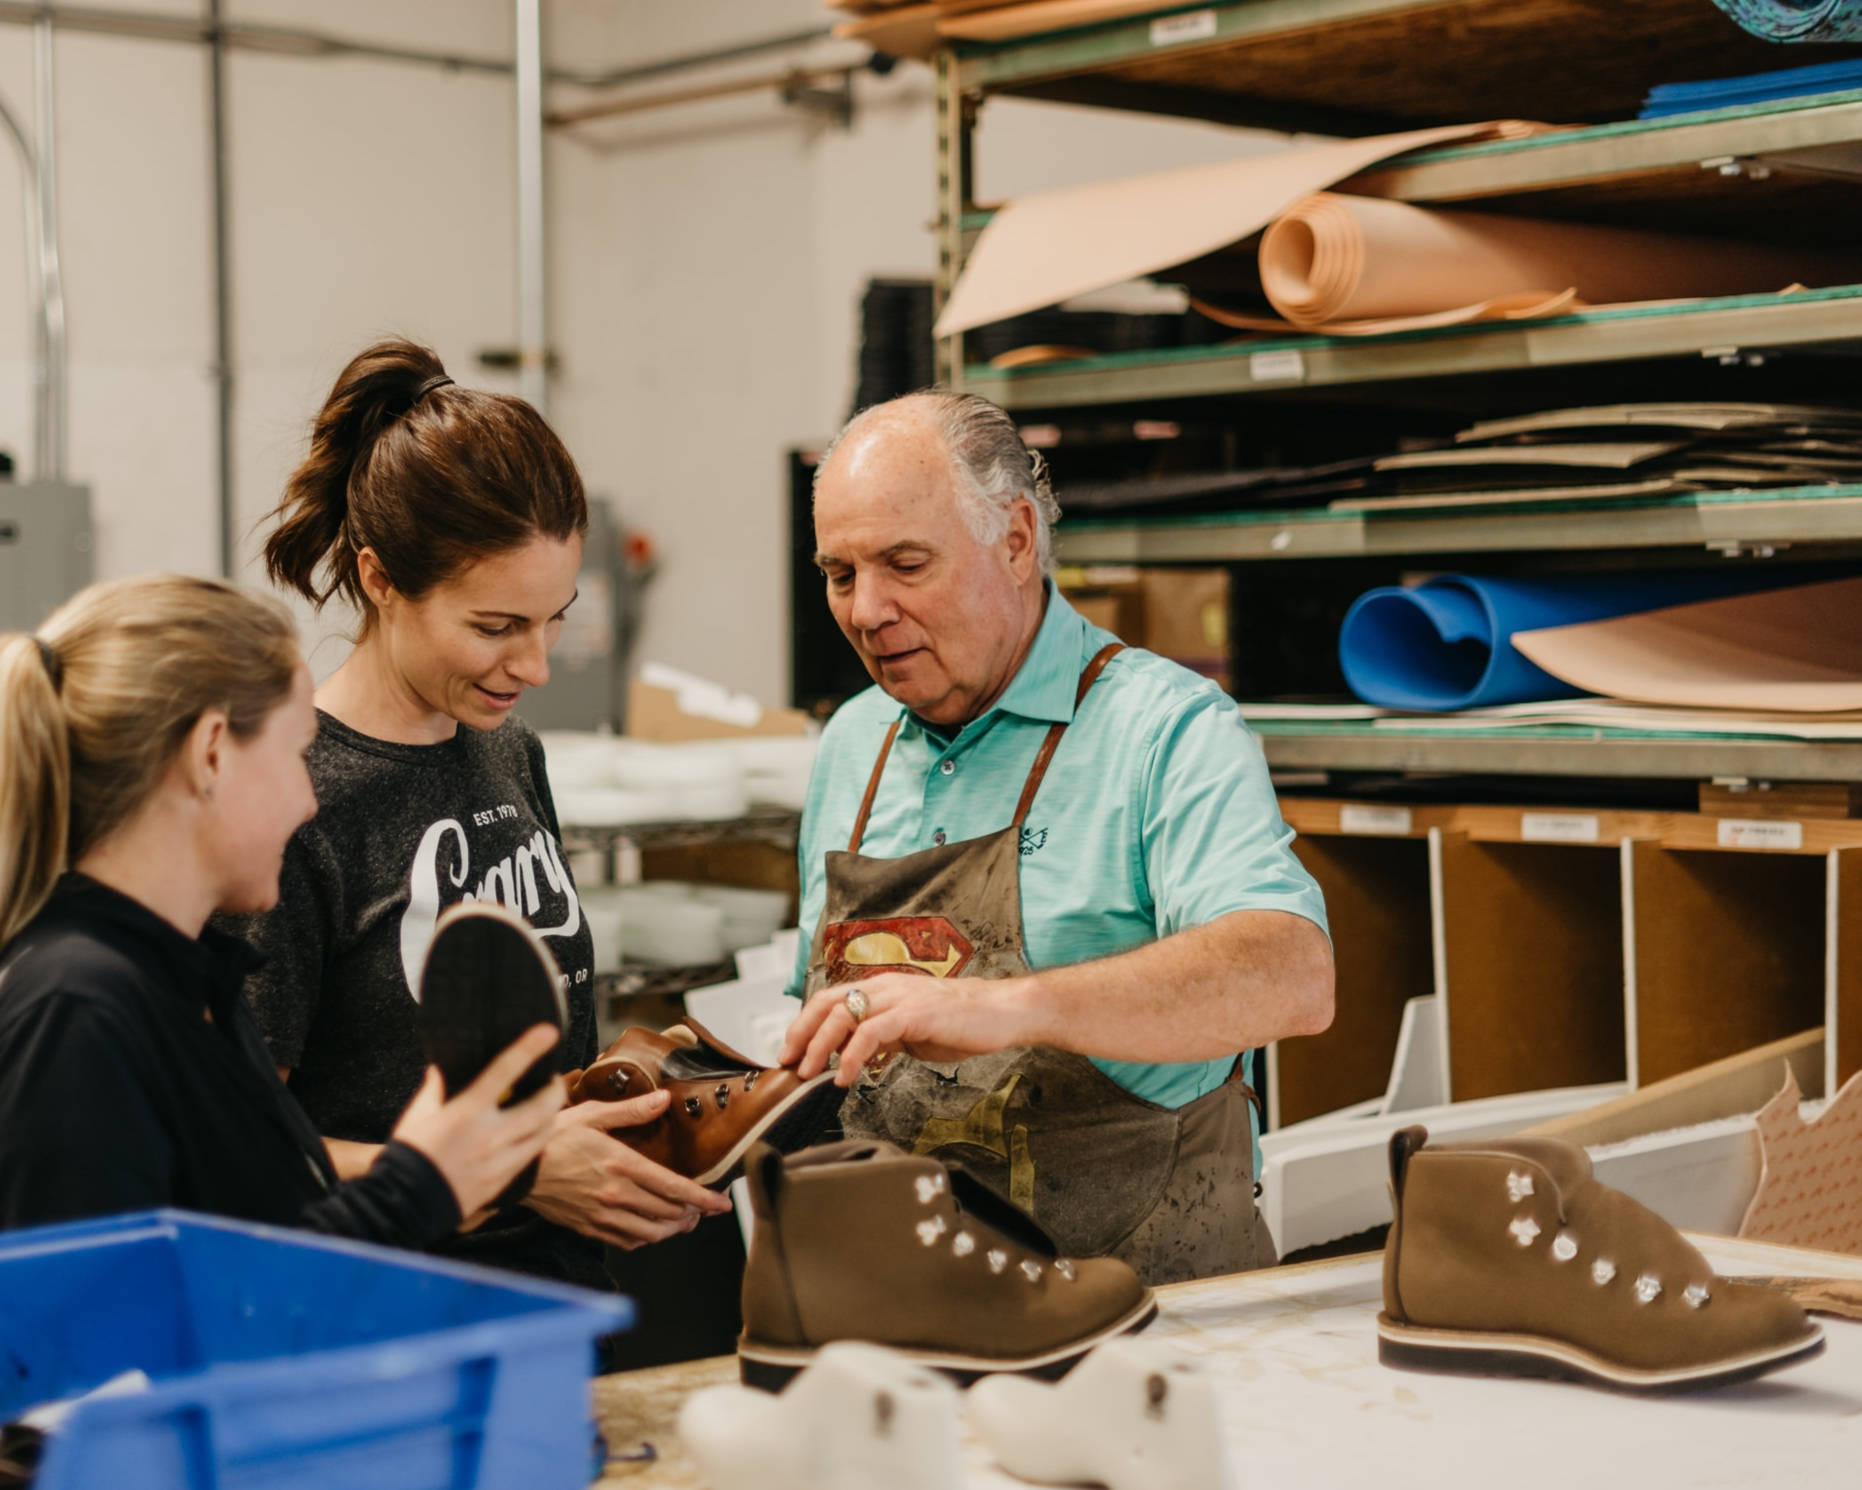 Here at Crary Shoes,we see ourselves as PROBLEM SOLVERS! - What's our Secret to Success?- Over 50 years of Orthopedic Shoemaker Experience- Board Certified Facility through The American Board of Orthotics, Prosthetics and Pedorthics- Two Full-Time Certified Pedorthists on Staff-Certified Orthotist- On-Site Shoe Factory: All of our custom shoes and orthotics are made on site, giving us total quality control and great turnaround time